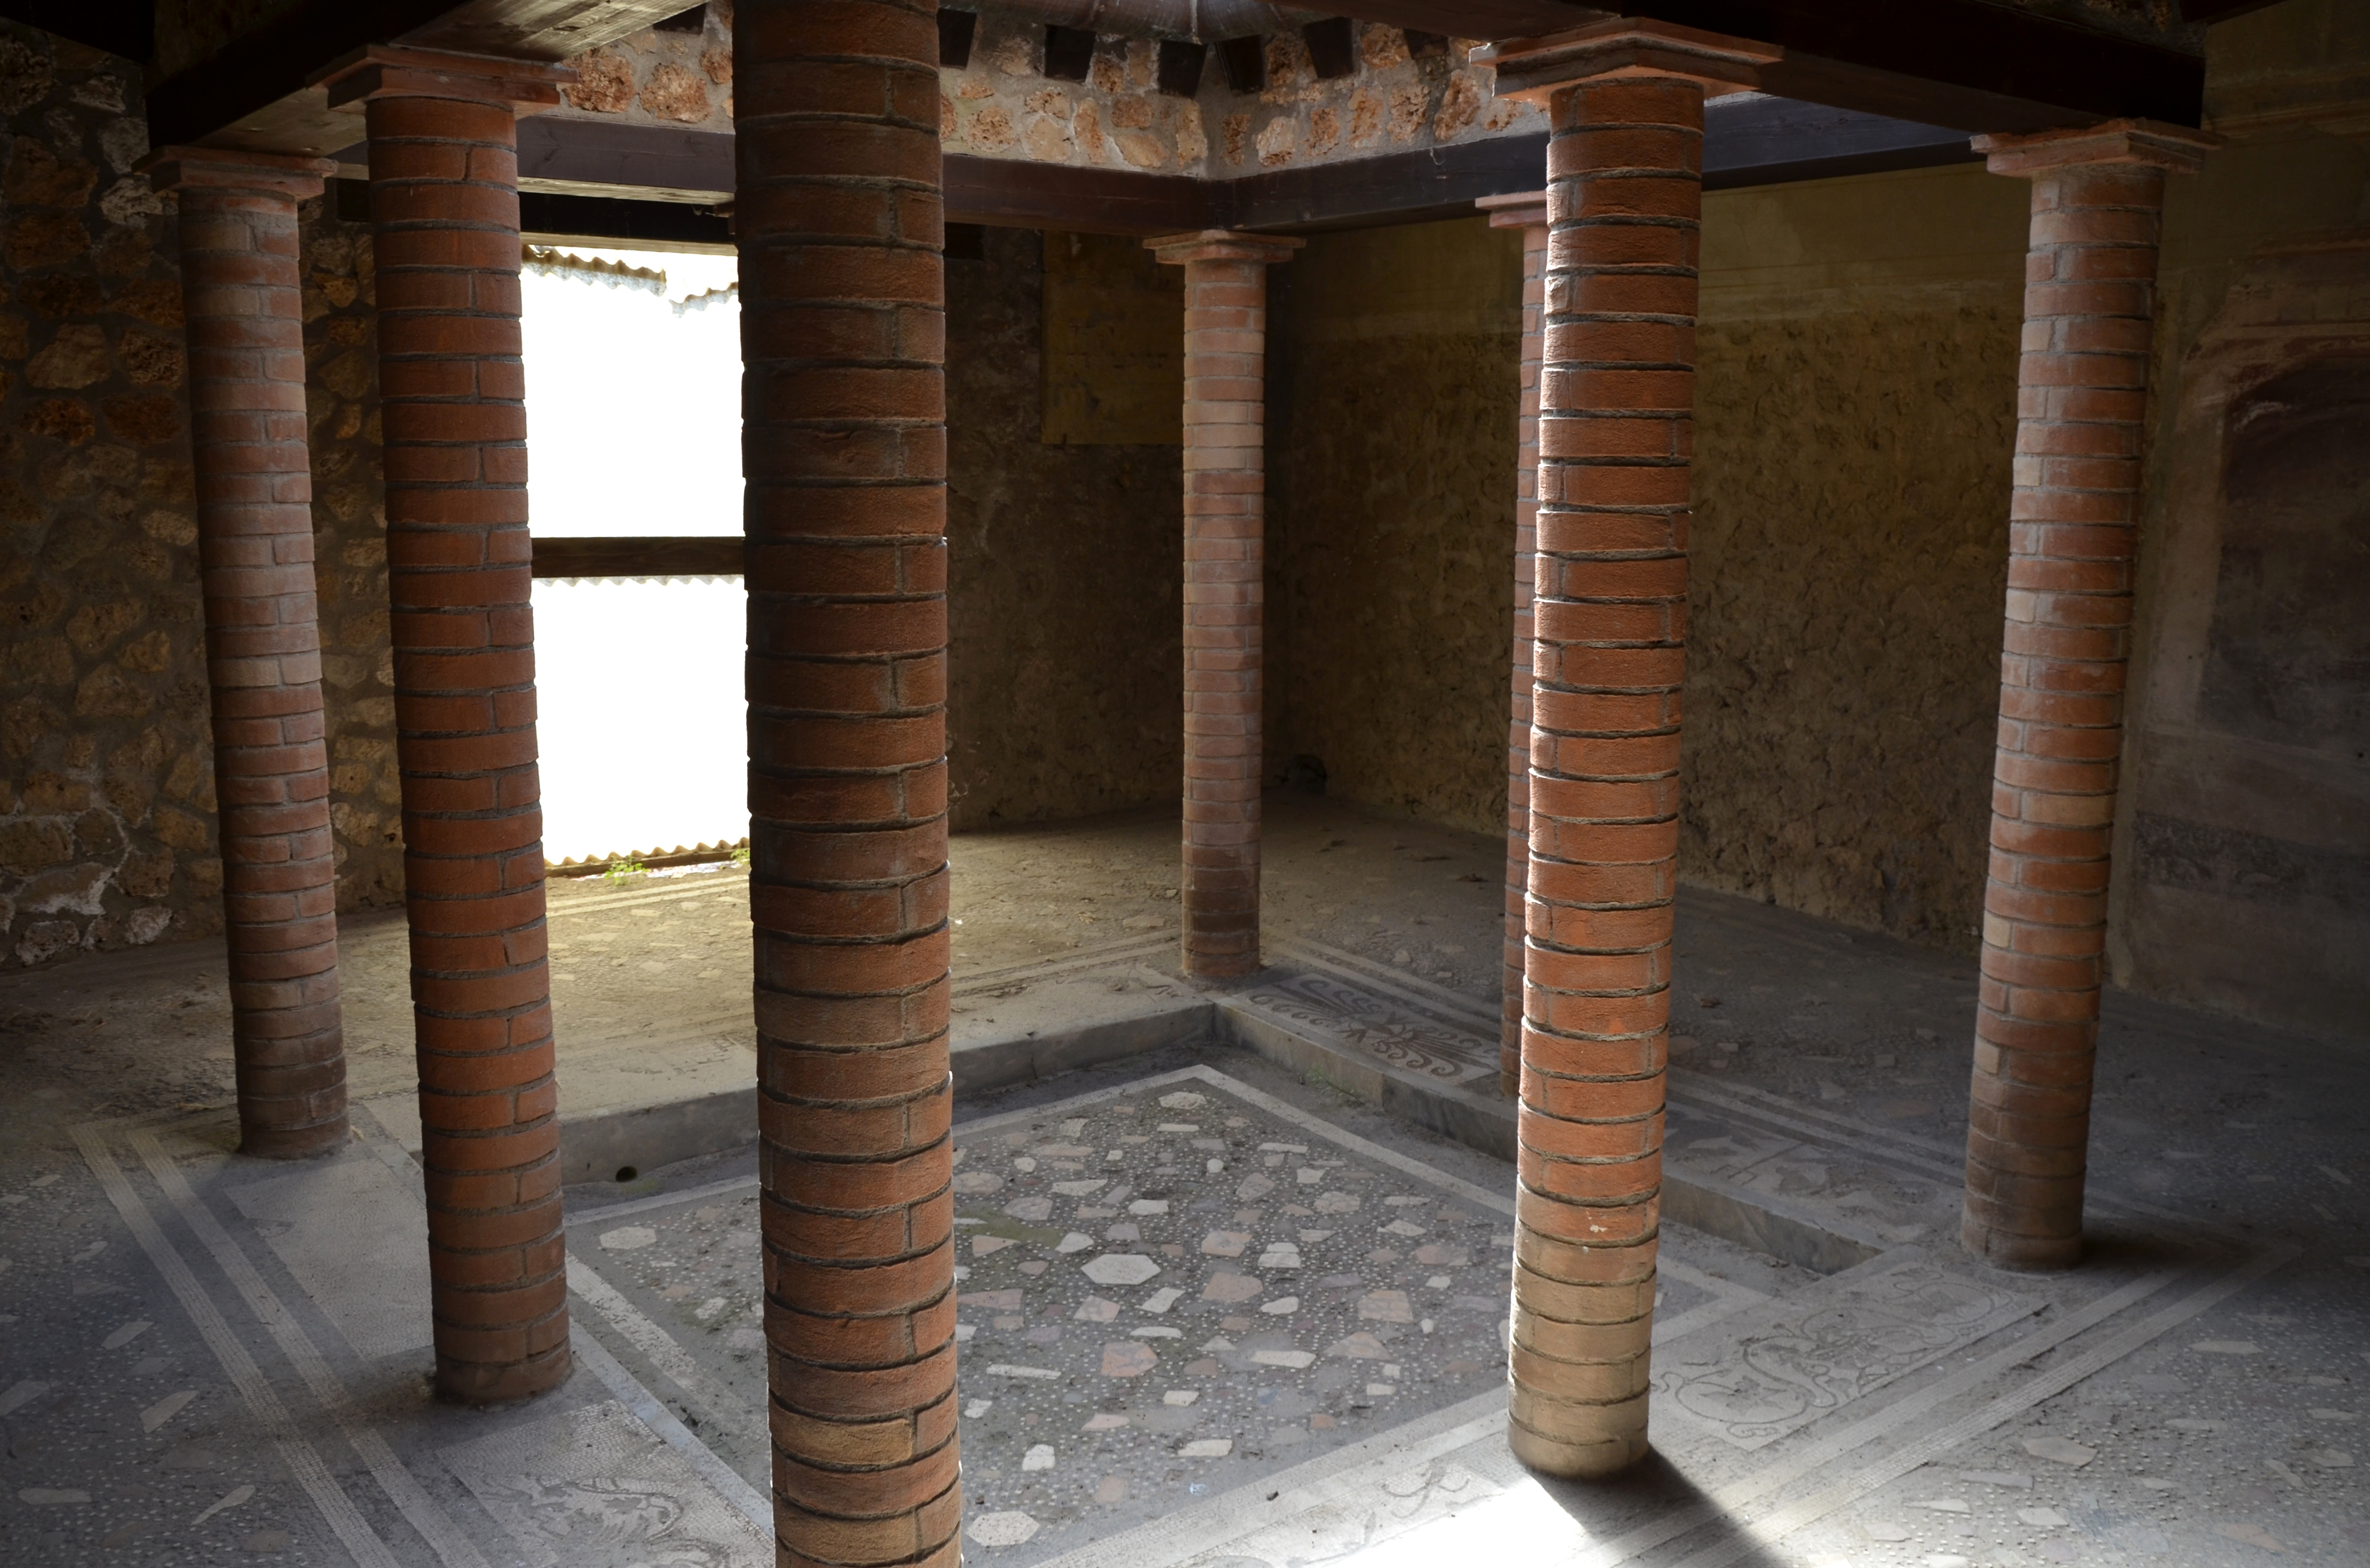 House of menander pompeii pictures